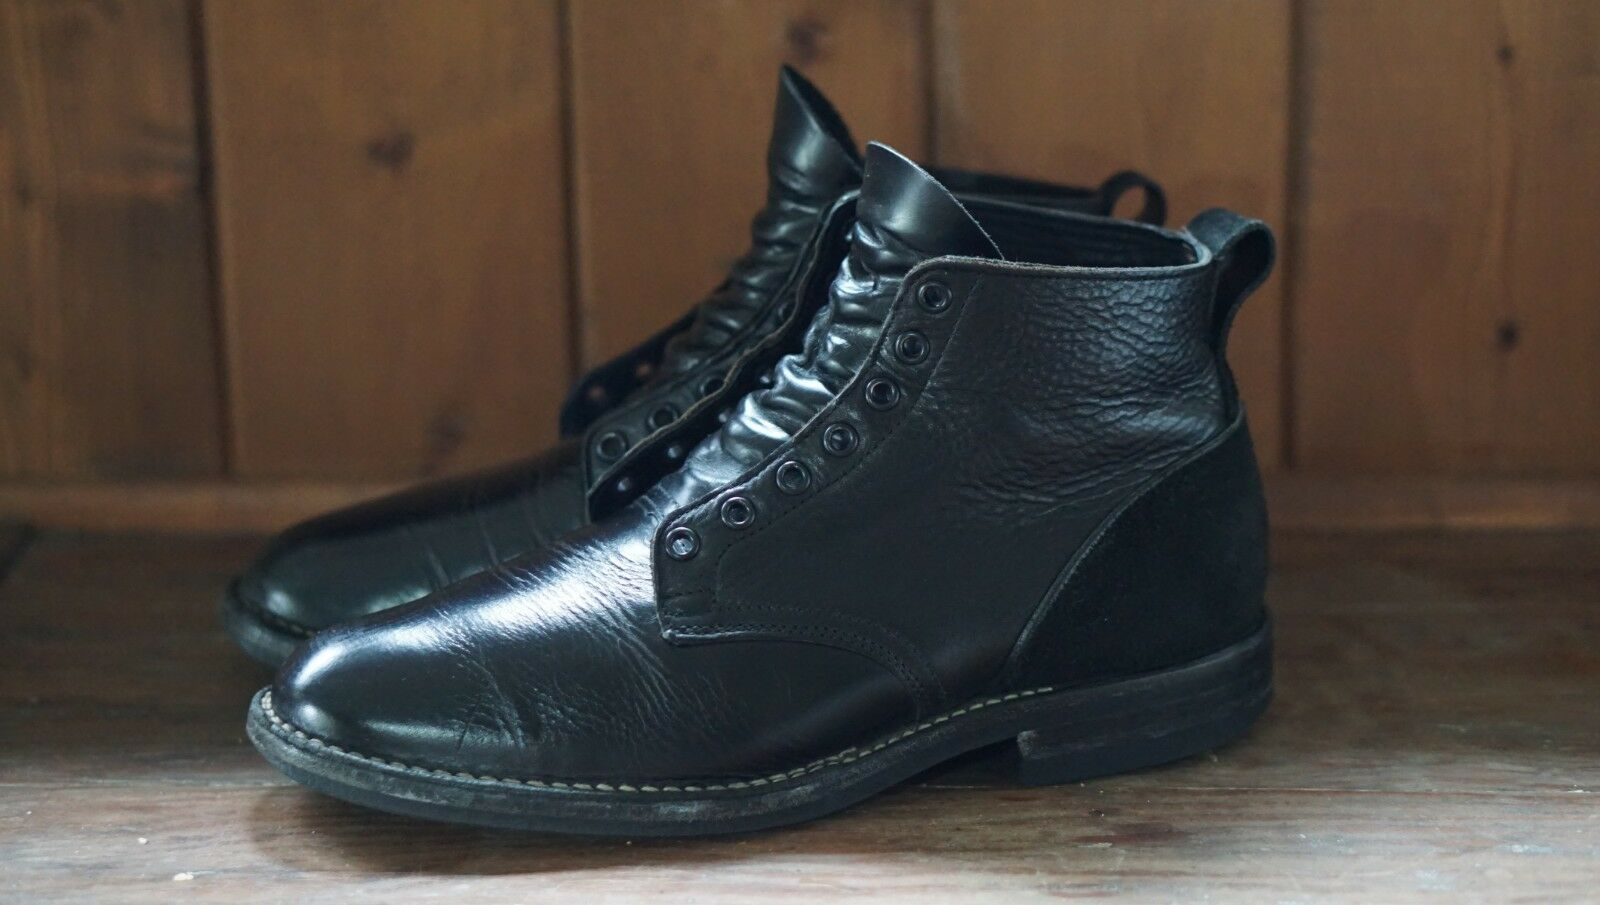 750 VIBERG x WINGS+HORNS One of a kind Service avvio Leather CXL nero Dimensione 8.5